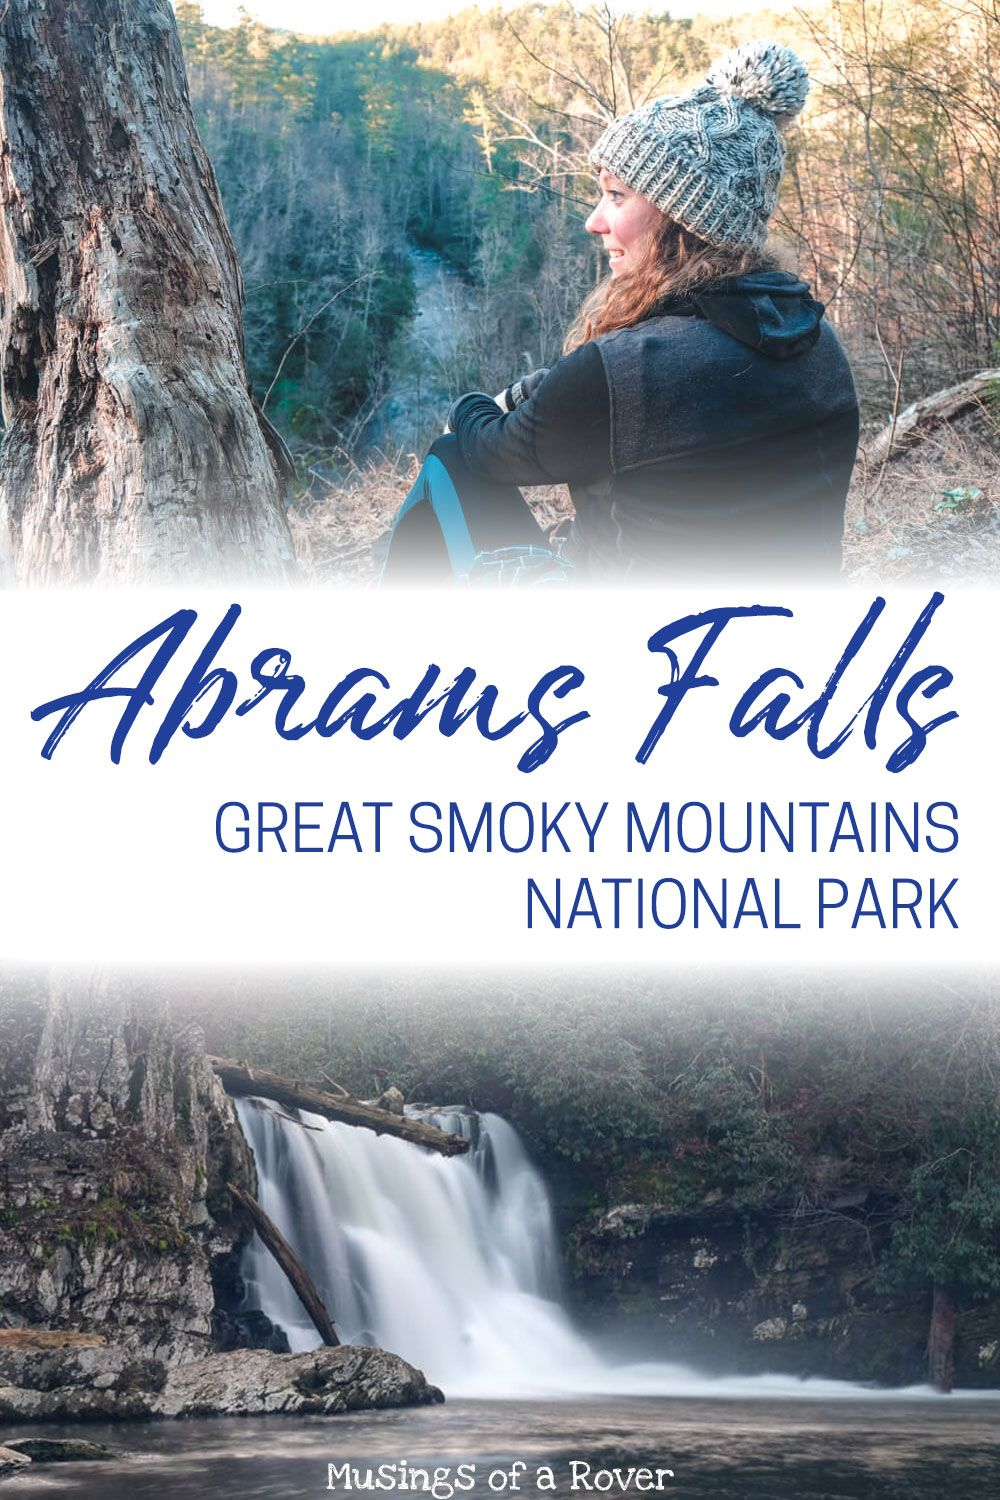 Abrams Falls Trail in Great Smoky Mountains National Park is a great waterfall hike! It's easily accessible from the Cades Cove Loop road and has a large parking lot. The trip to Abrams Falls is 5 miles roundtrip but is relatively flat. Expect to spend 2-3 hours hiking the trail!